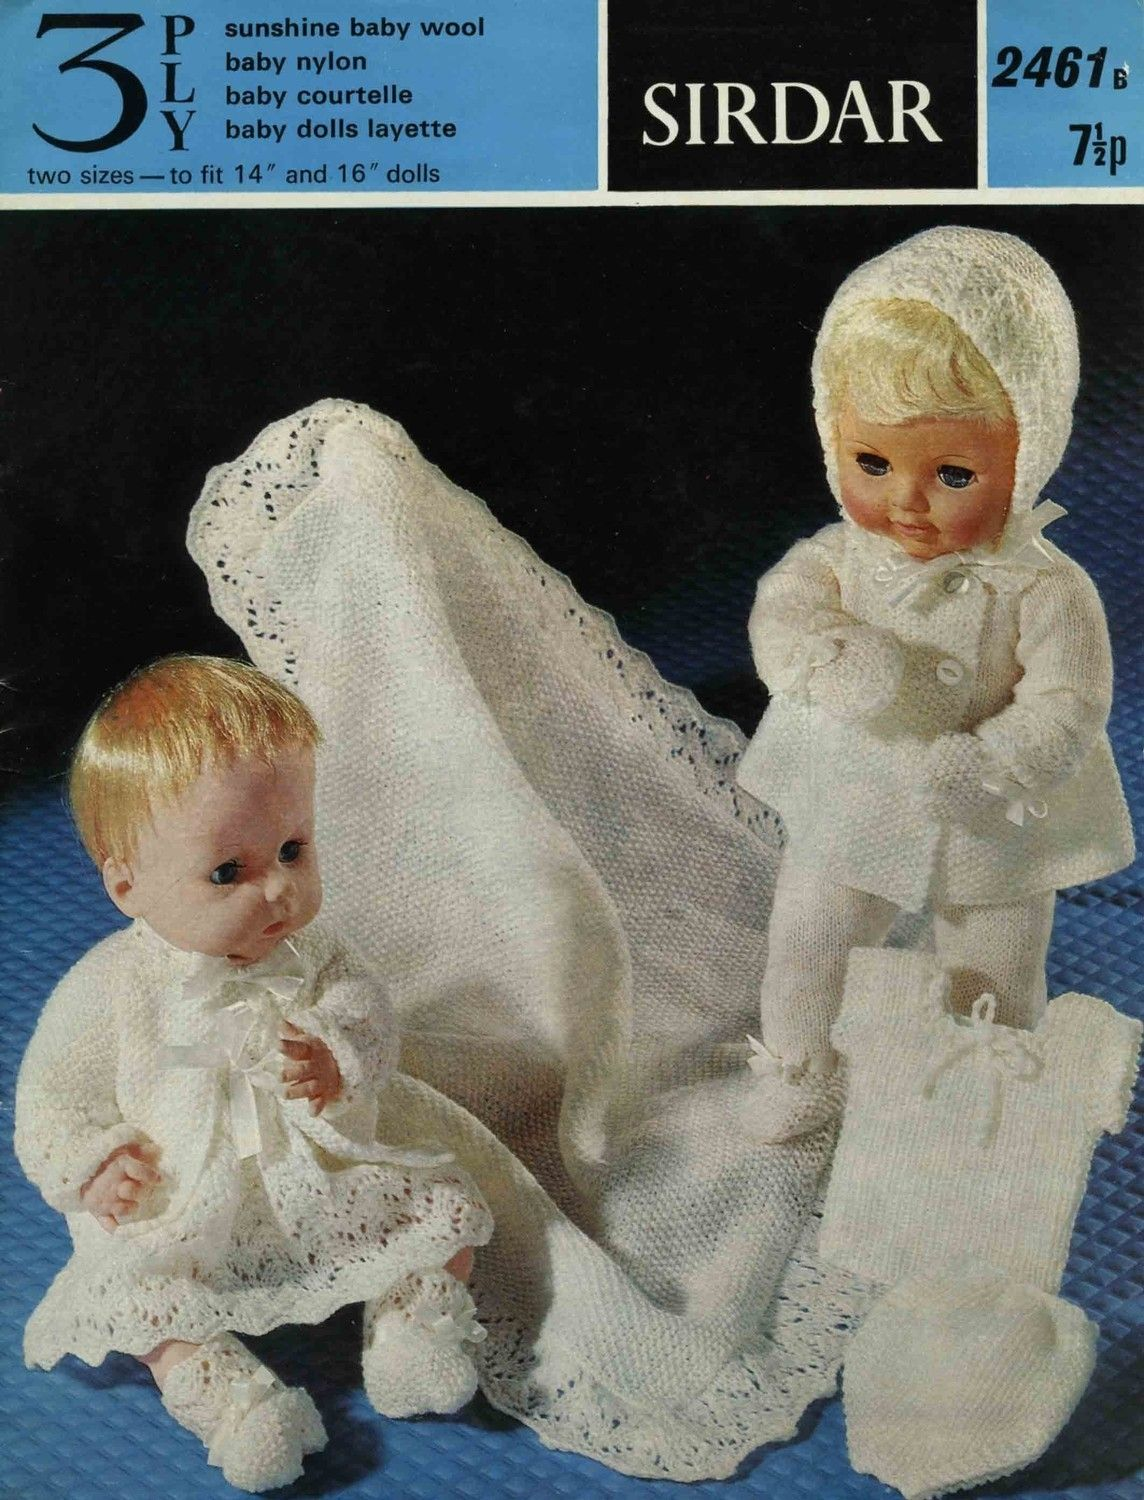 Vintage baby doll layette 14 and 16 doll knitting pattern vintage baby doll layette and doll knitting pattern 1960 pdf pattern sirdar 2461 by dalestratford on etsy bankloansurffo Choice Image